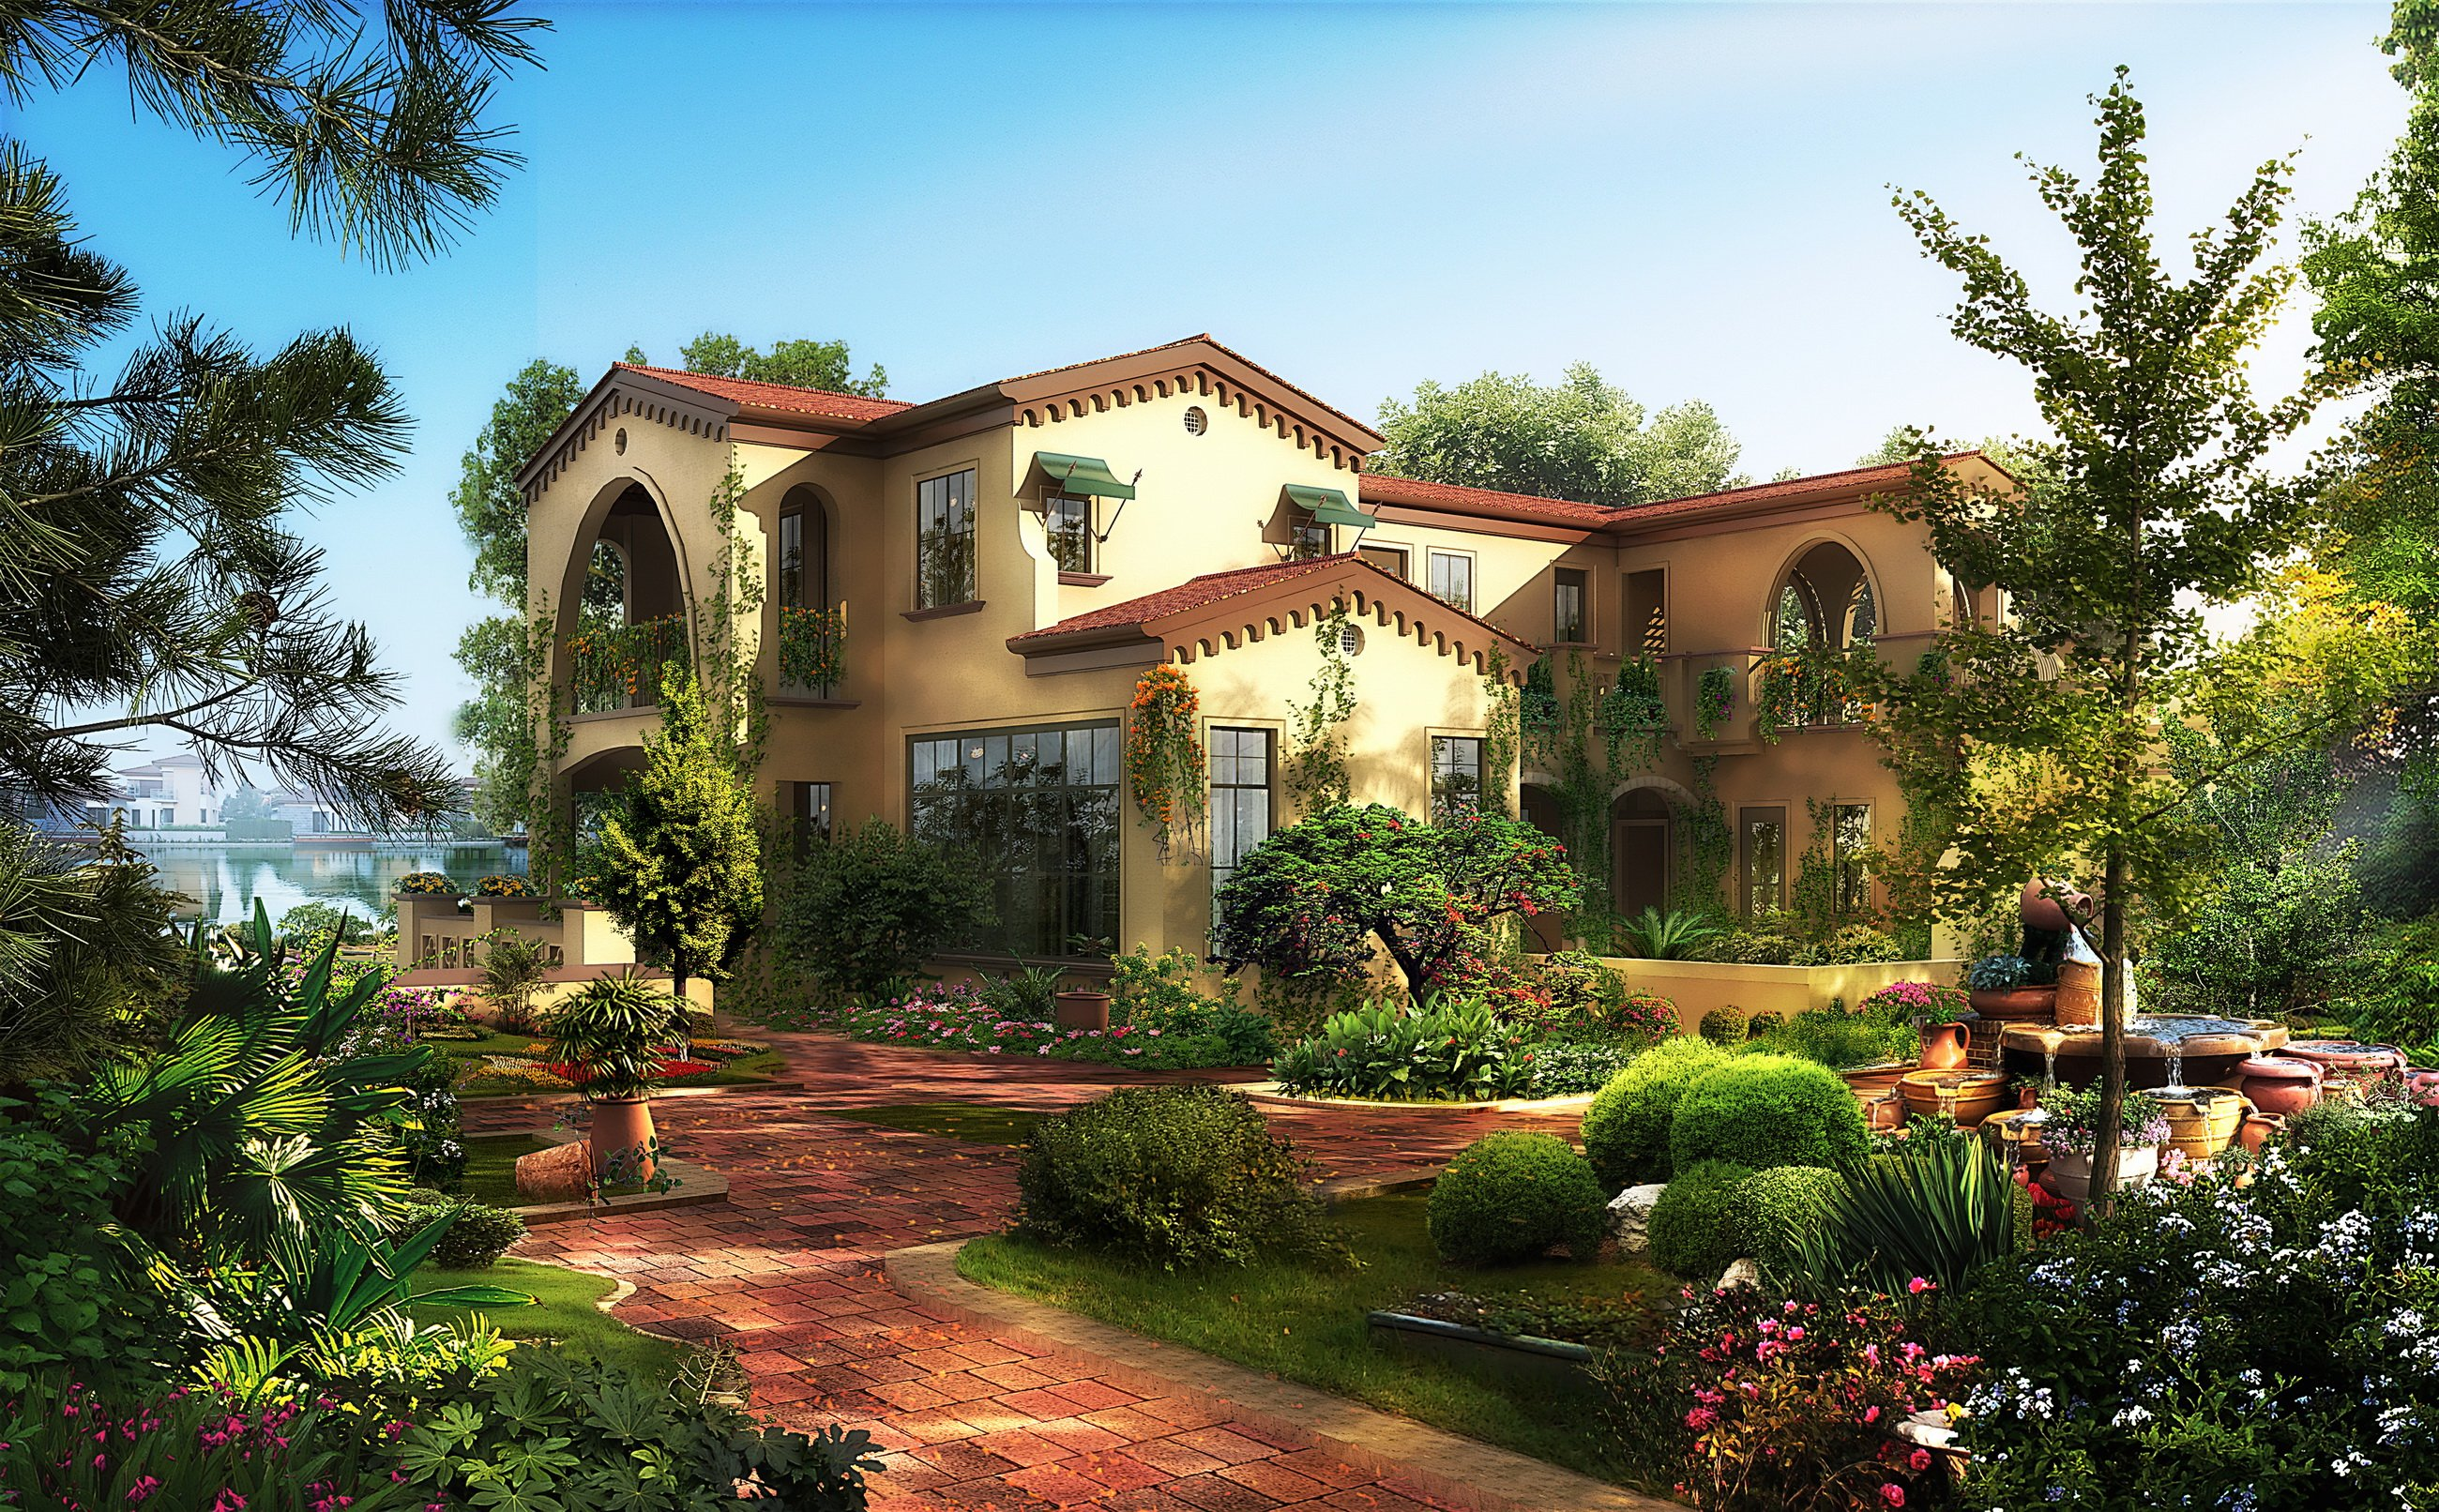 villa houses wallpapers 3d - photo #24